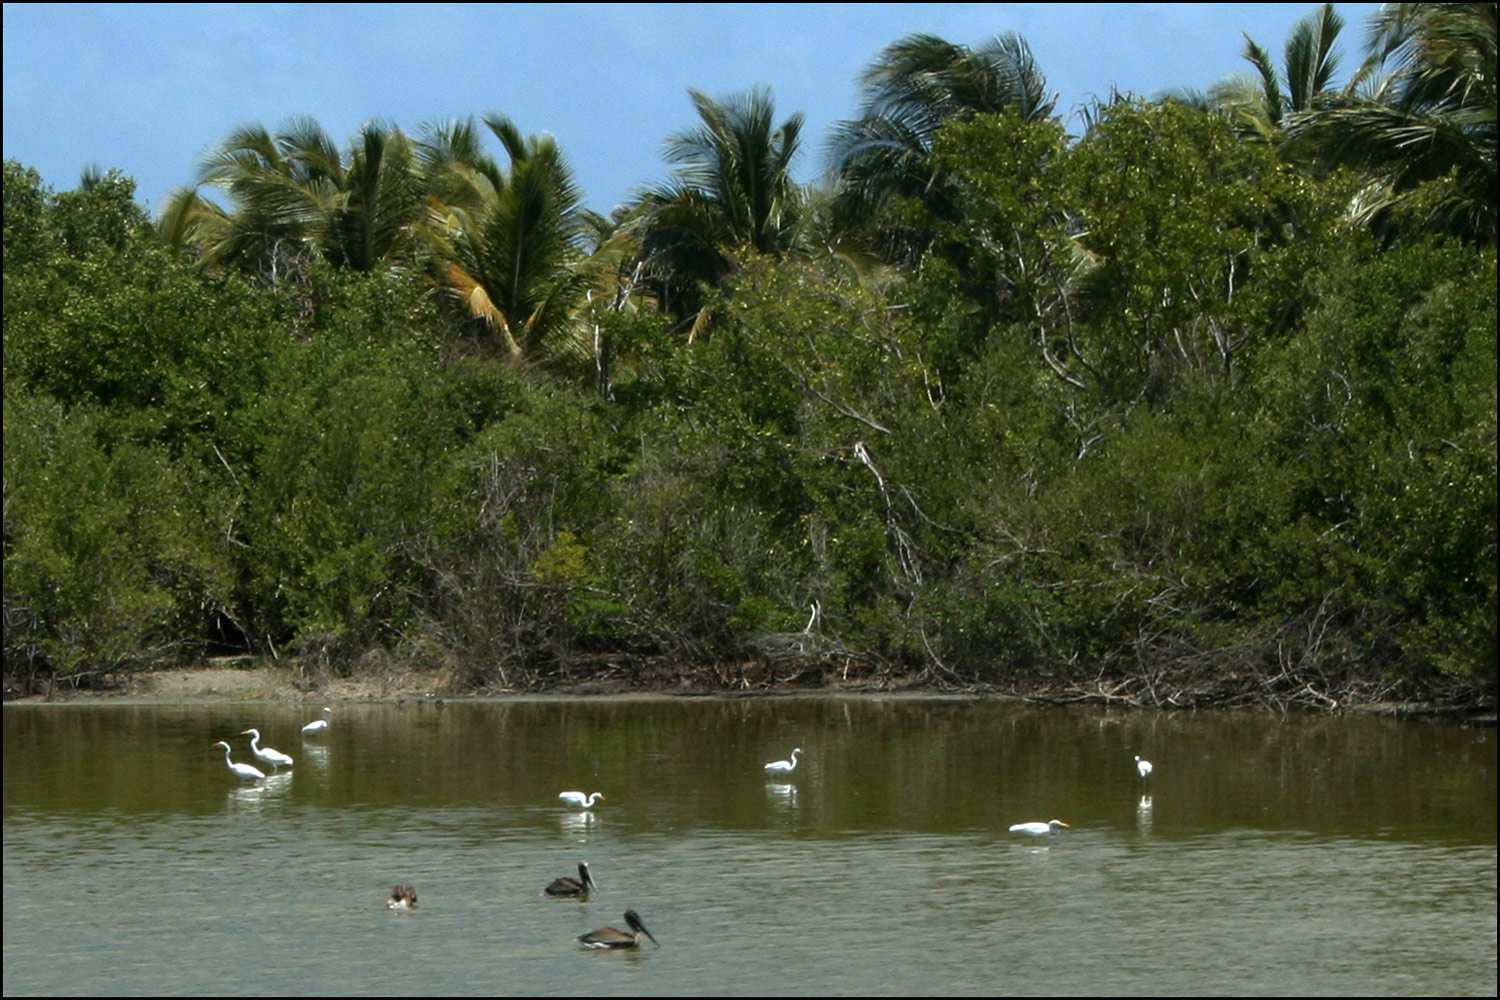 Herons and Pelicans on the Great Salt Pond